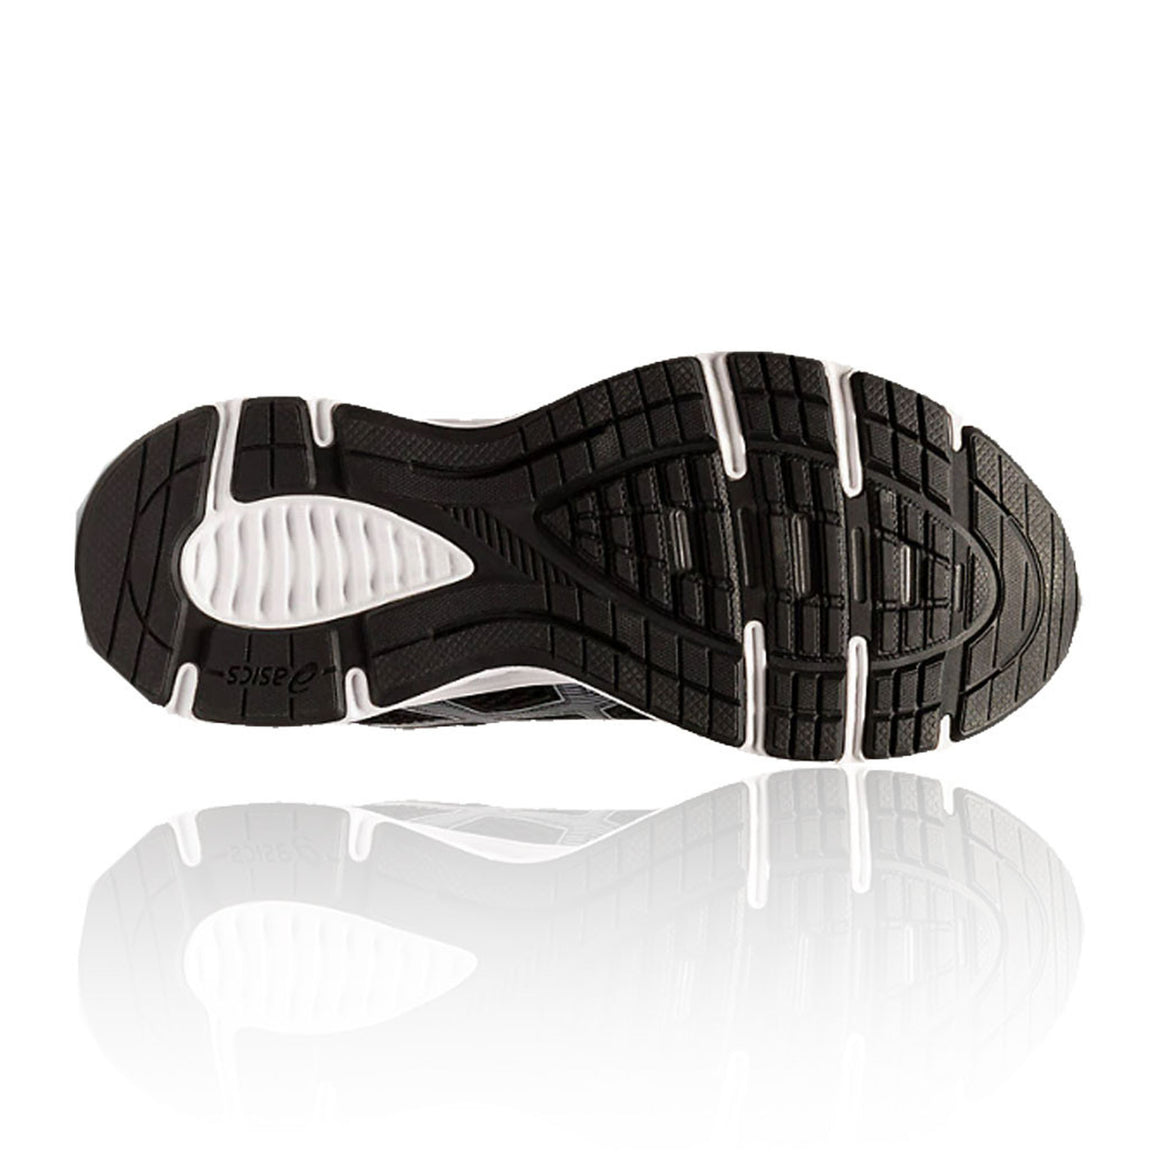 JOLT 2 GS Running Shoe for Kids in Black & Charcoal